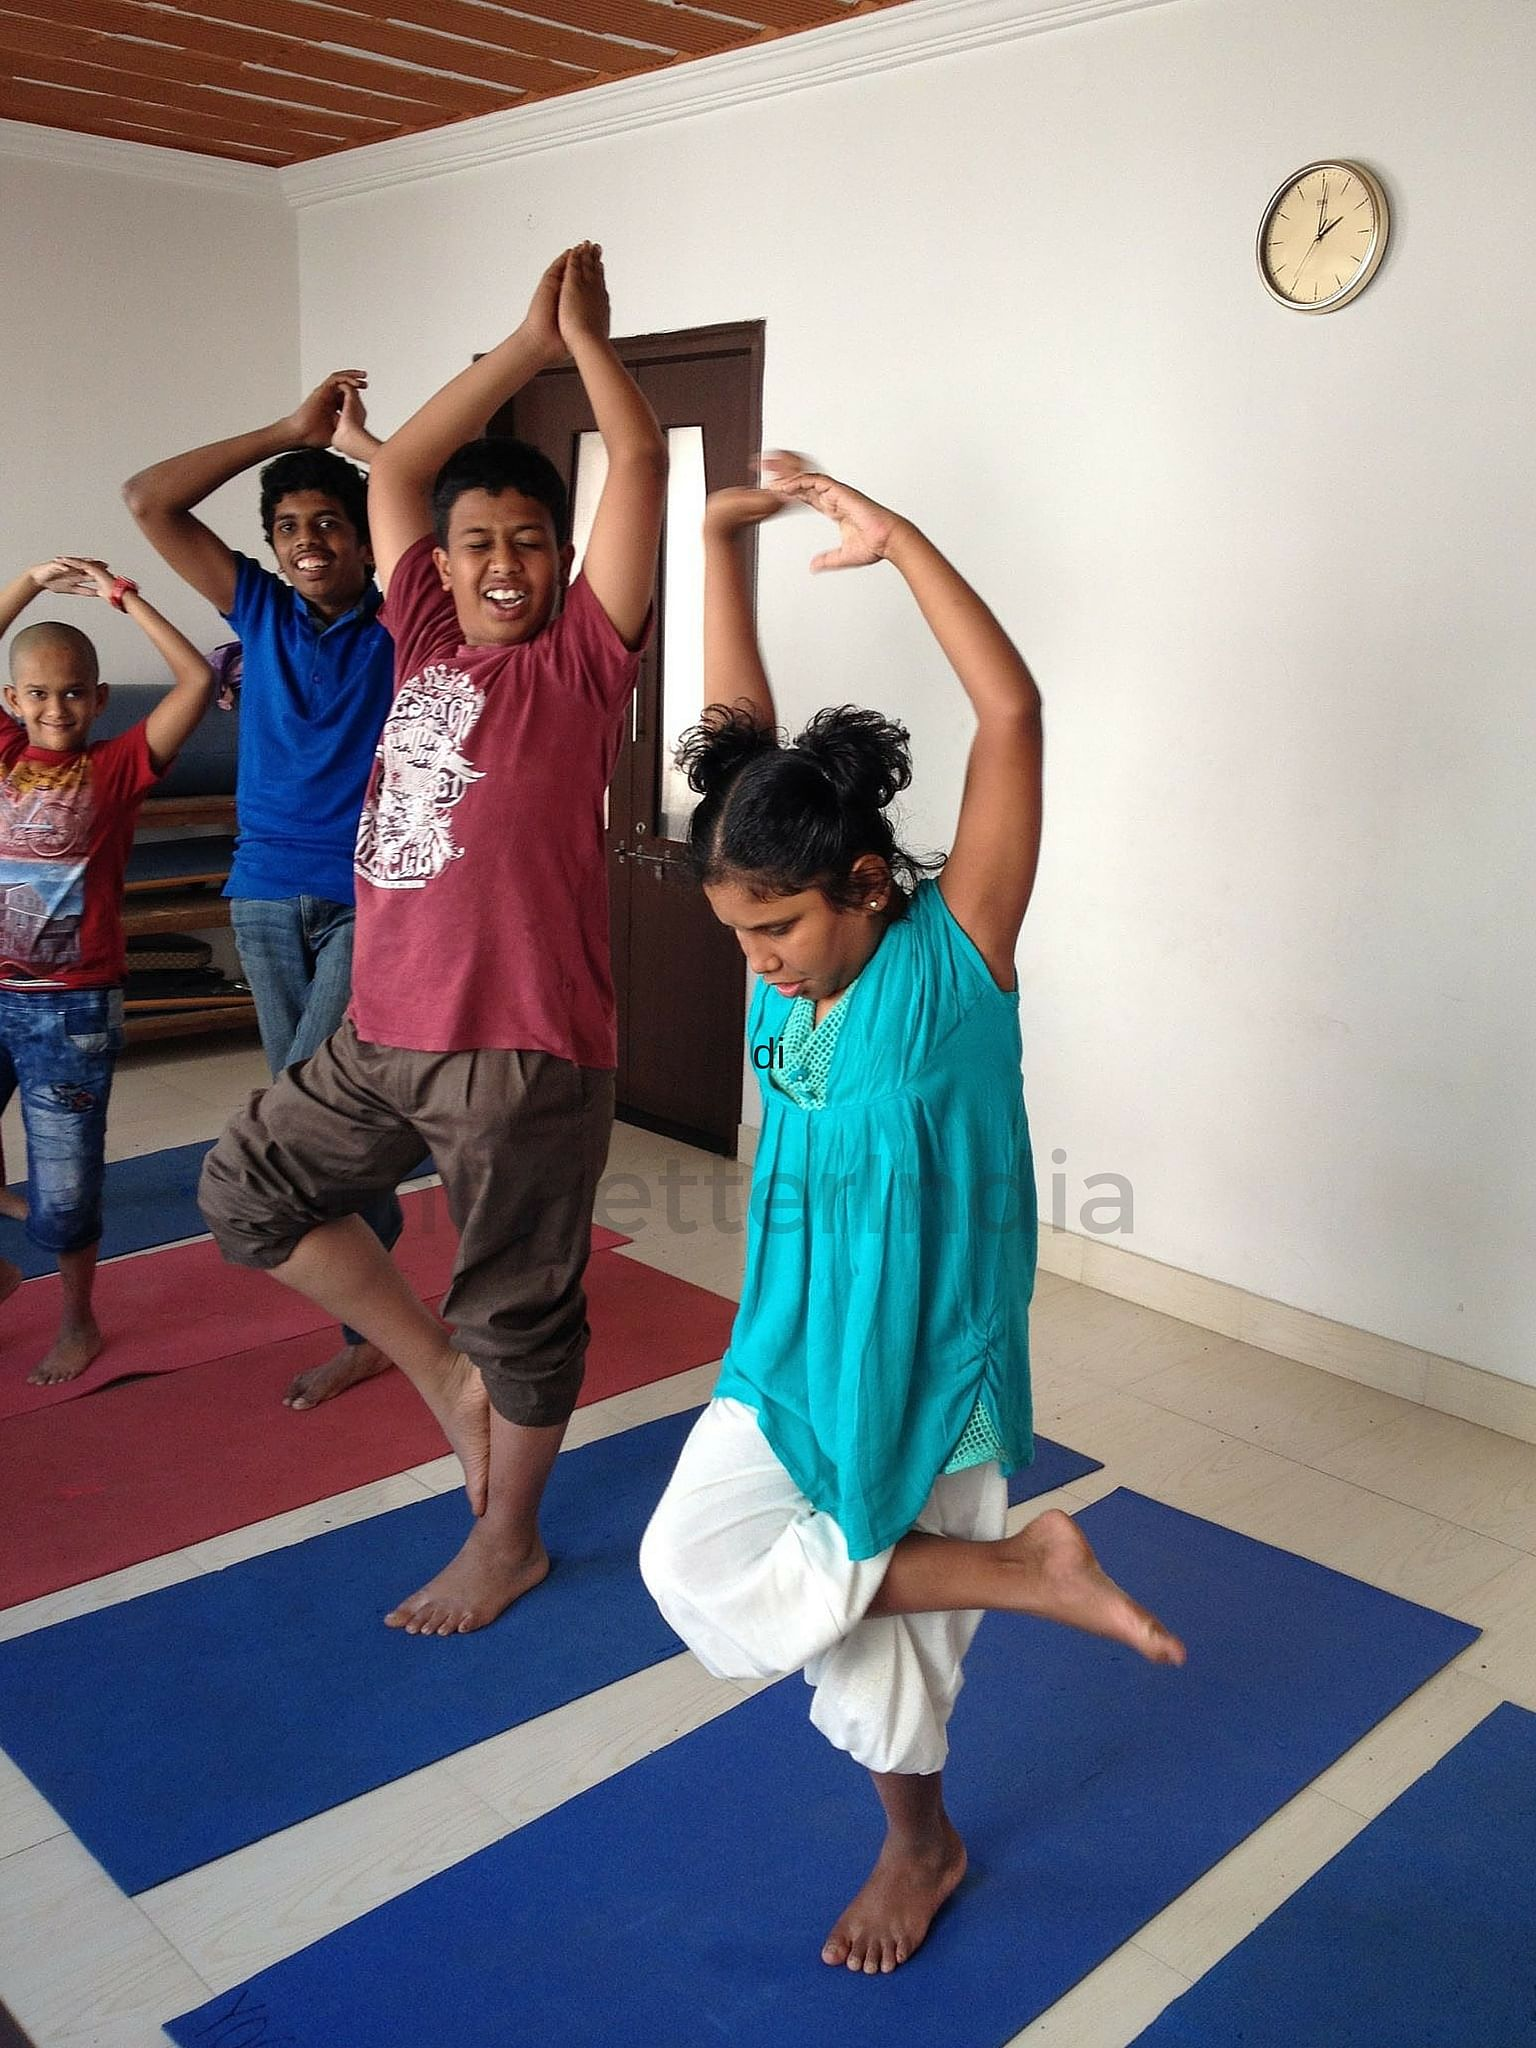 Besides physical therapy, neuro linguistic programmimg and manual muscle work alternate methods, such as yoga, art and music, are also used in the rehabilitation process of the children.